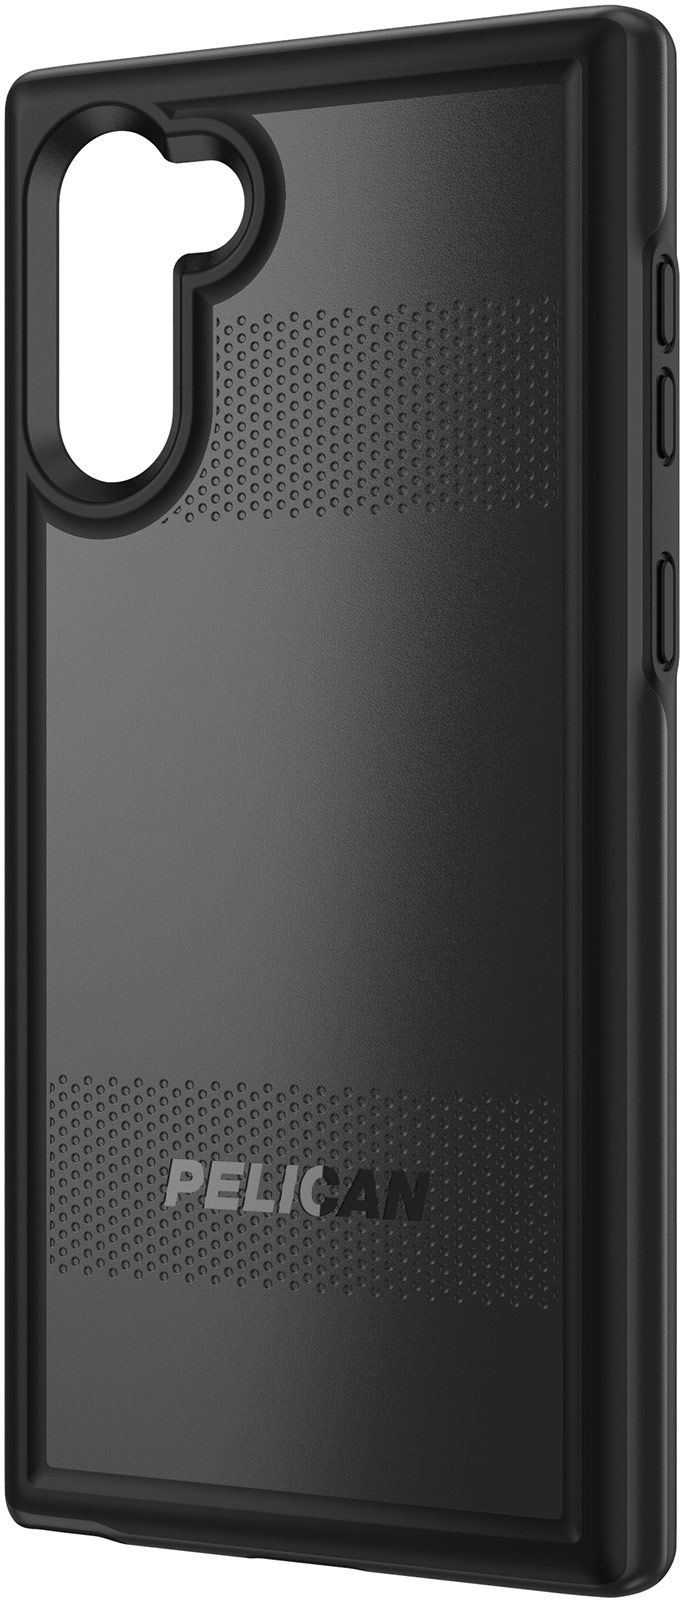 pelican note 10 protector phone case